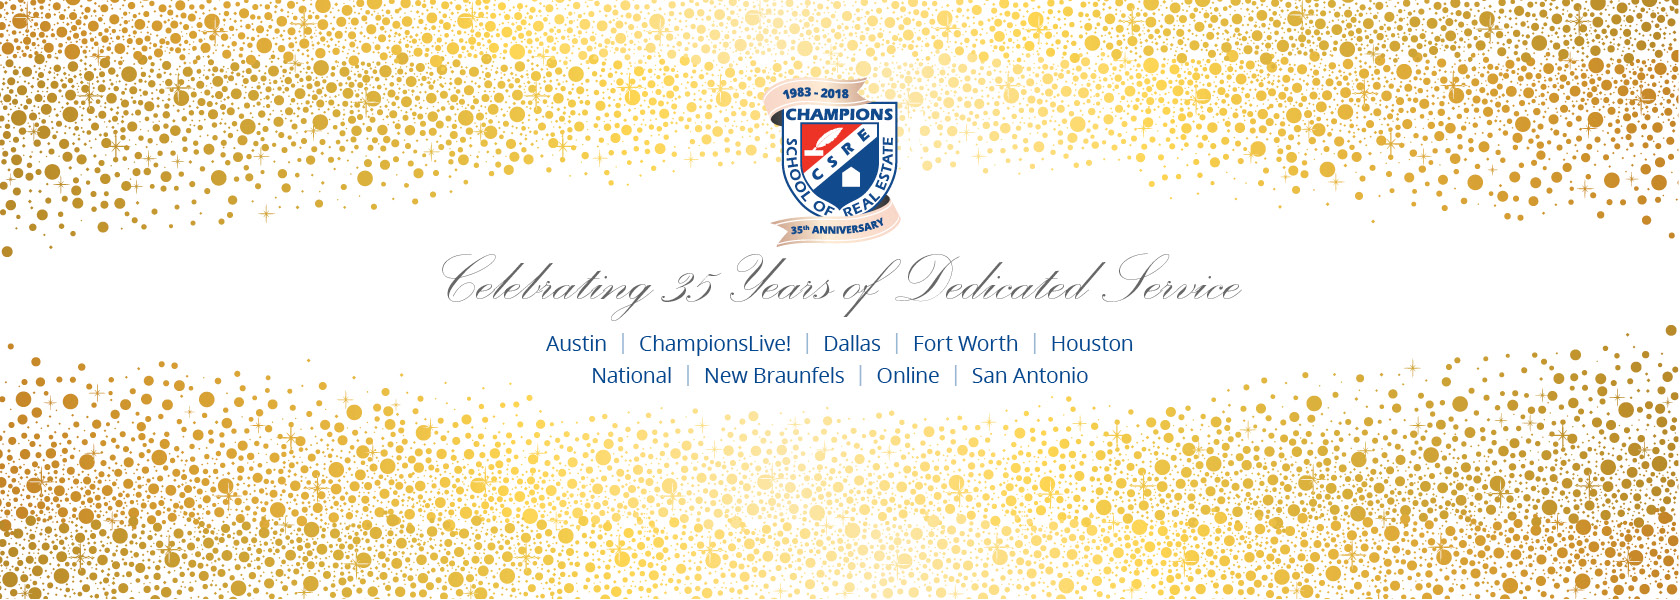 35 Years Celebration Banner